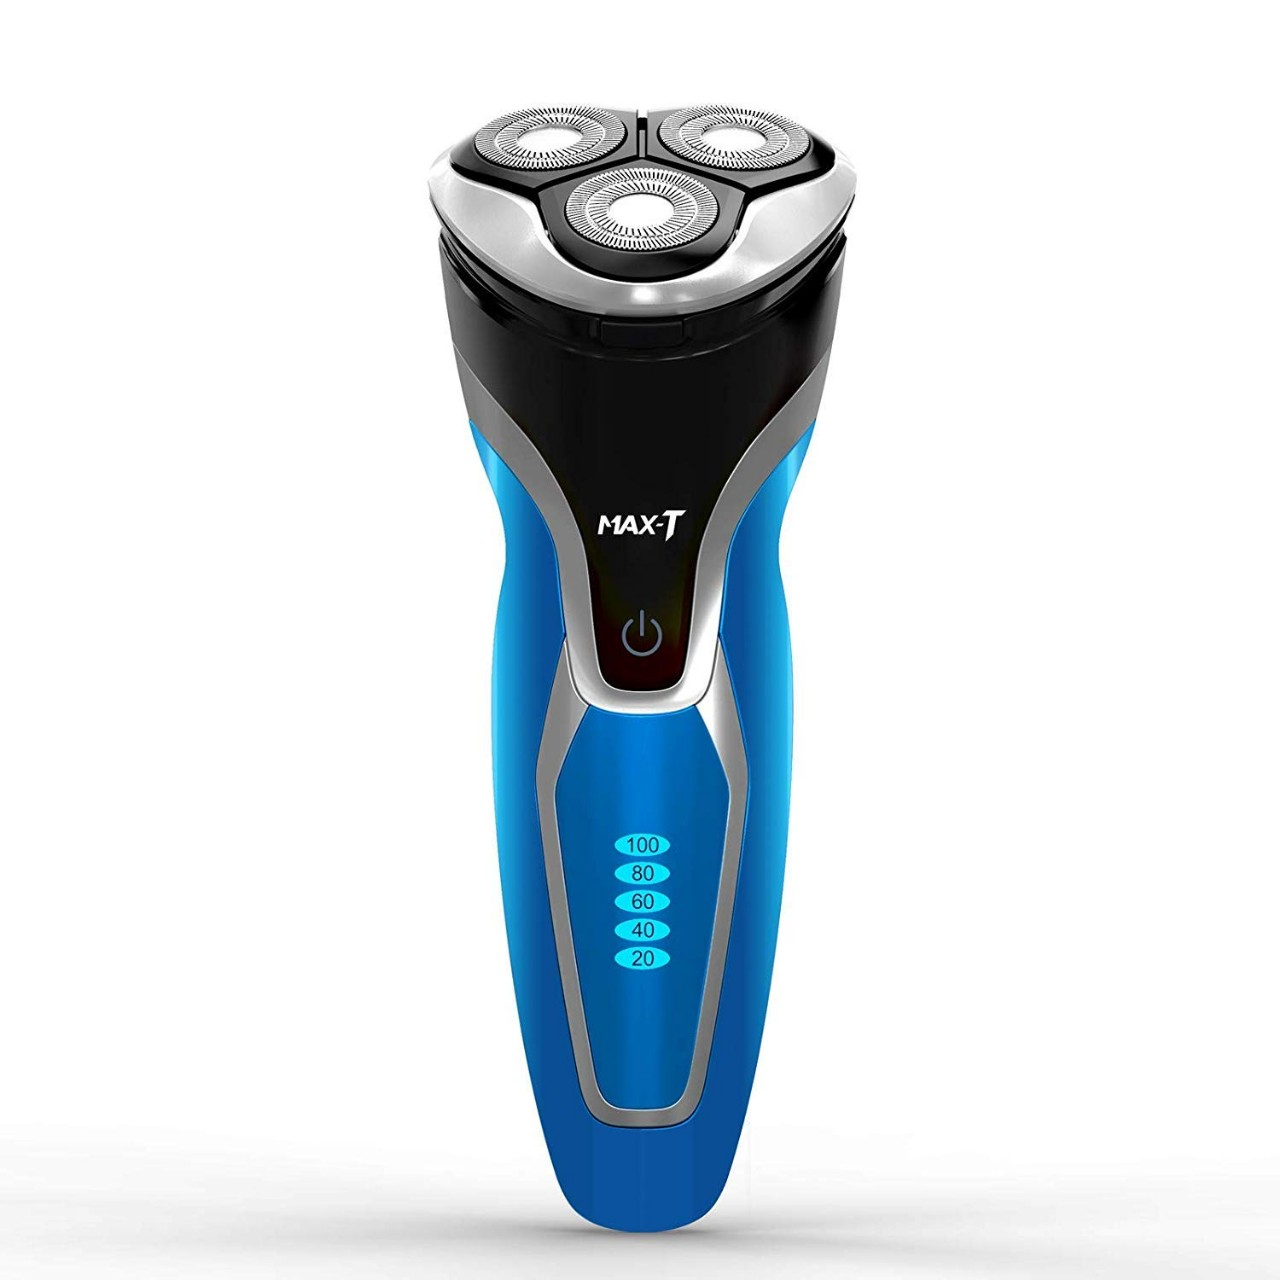 Electric Shaver Razor for Men, MAX-T Quick Charge Wet Dry Rotary Shaver with Pop Up Trimmer, IPX7